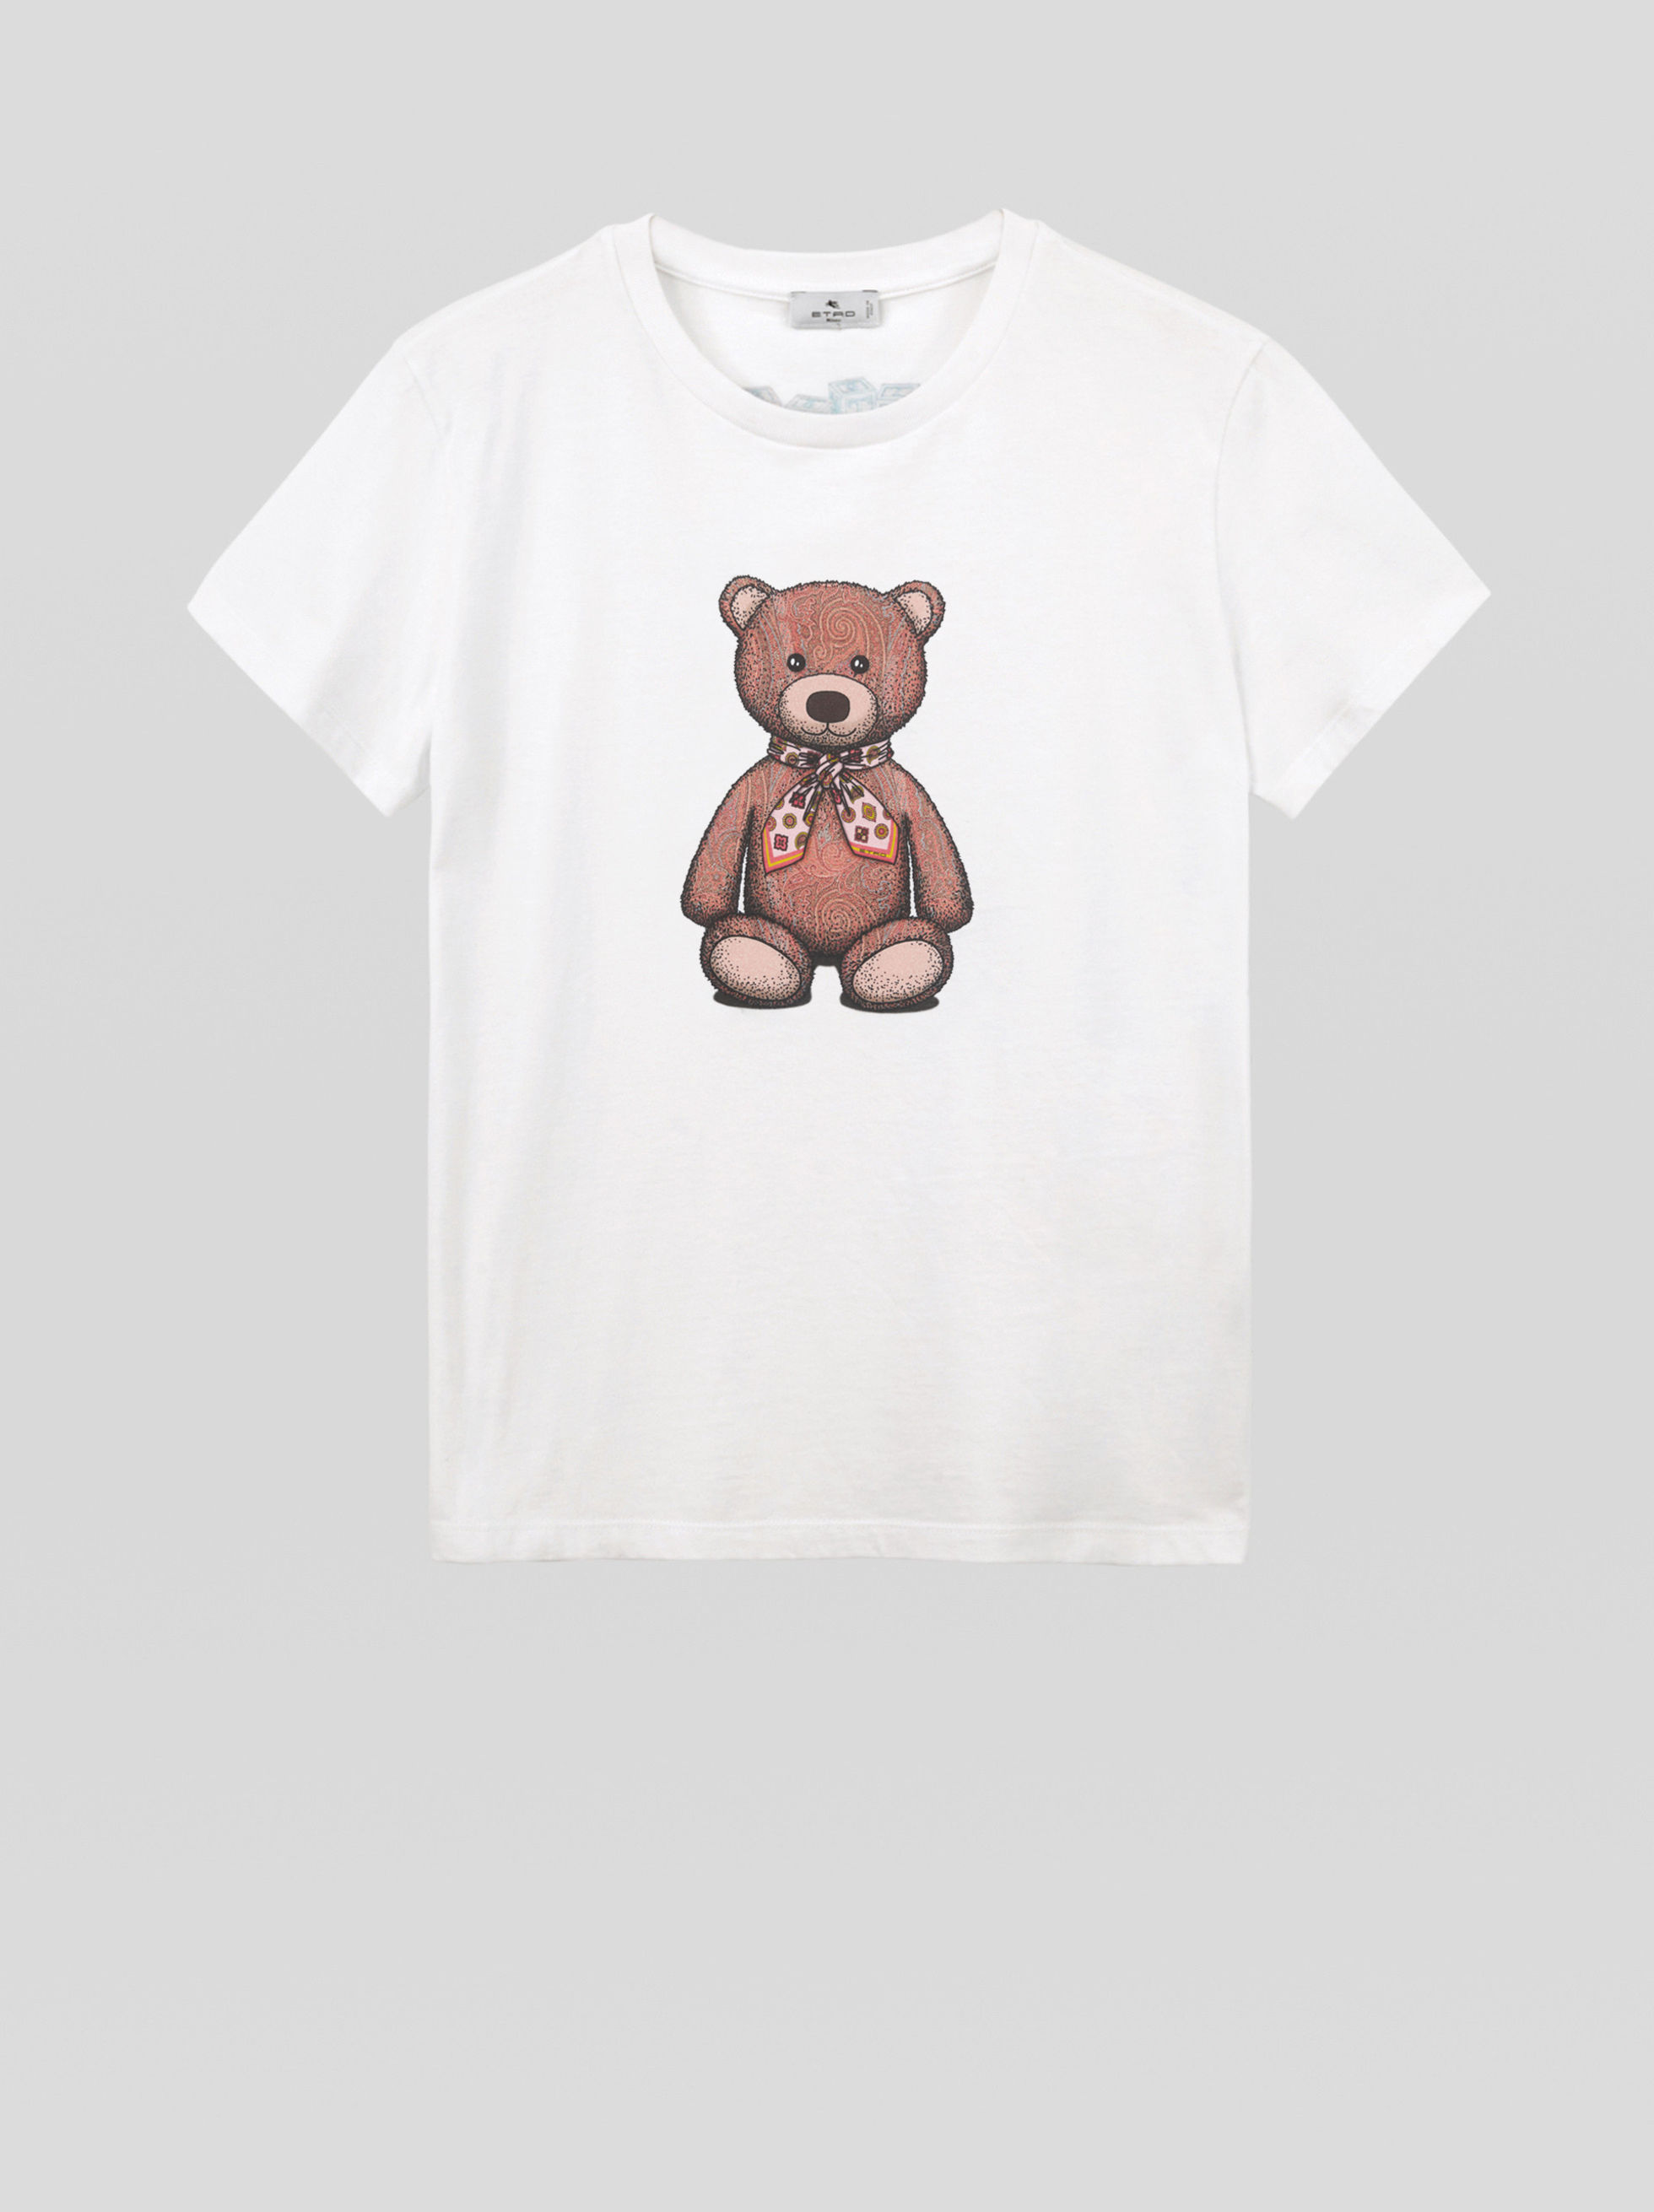 T-SHIRT WITH PAISLEY TEDDY BEAR